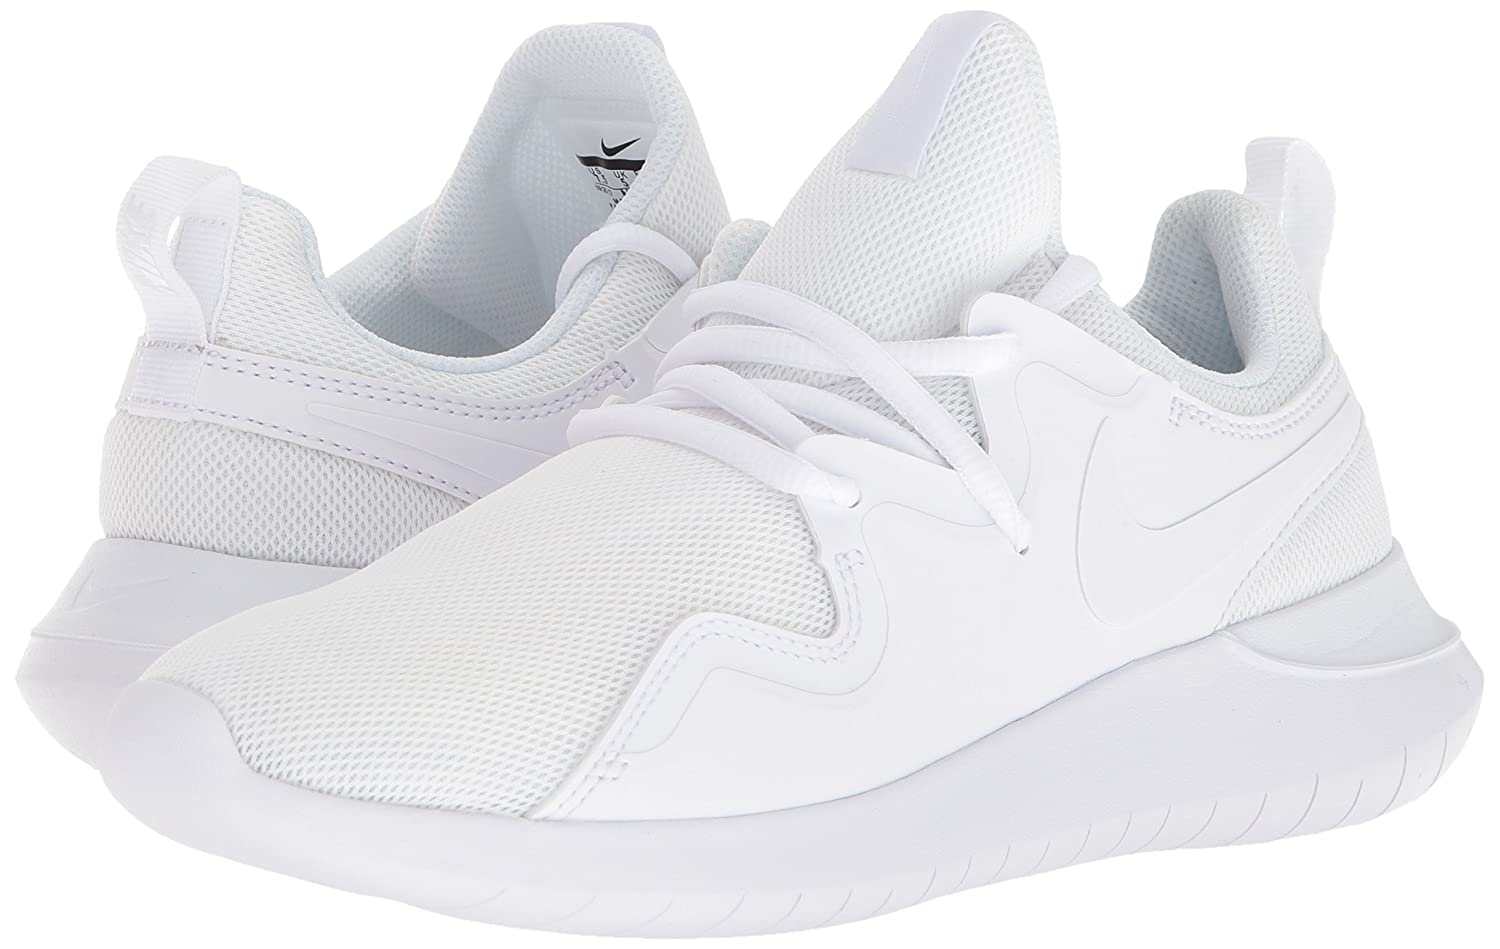 NIKE Women's Tessen Running Shoe B00JWKLVG6 6.5 B(M) US|White/White - Black